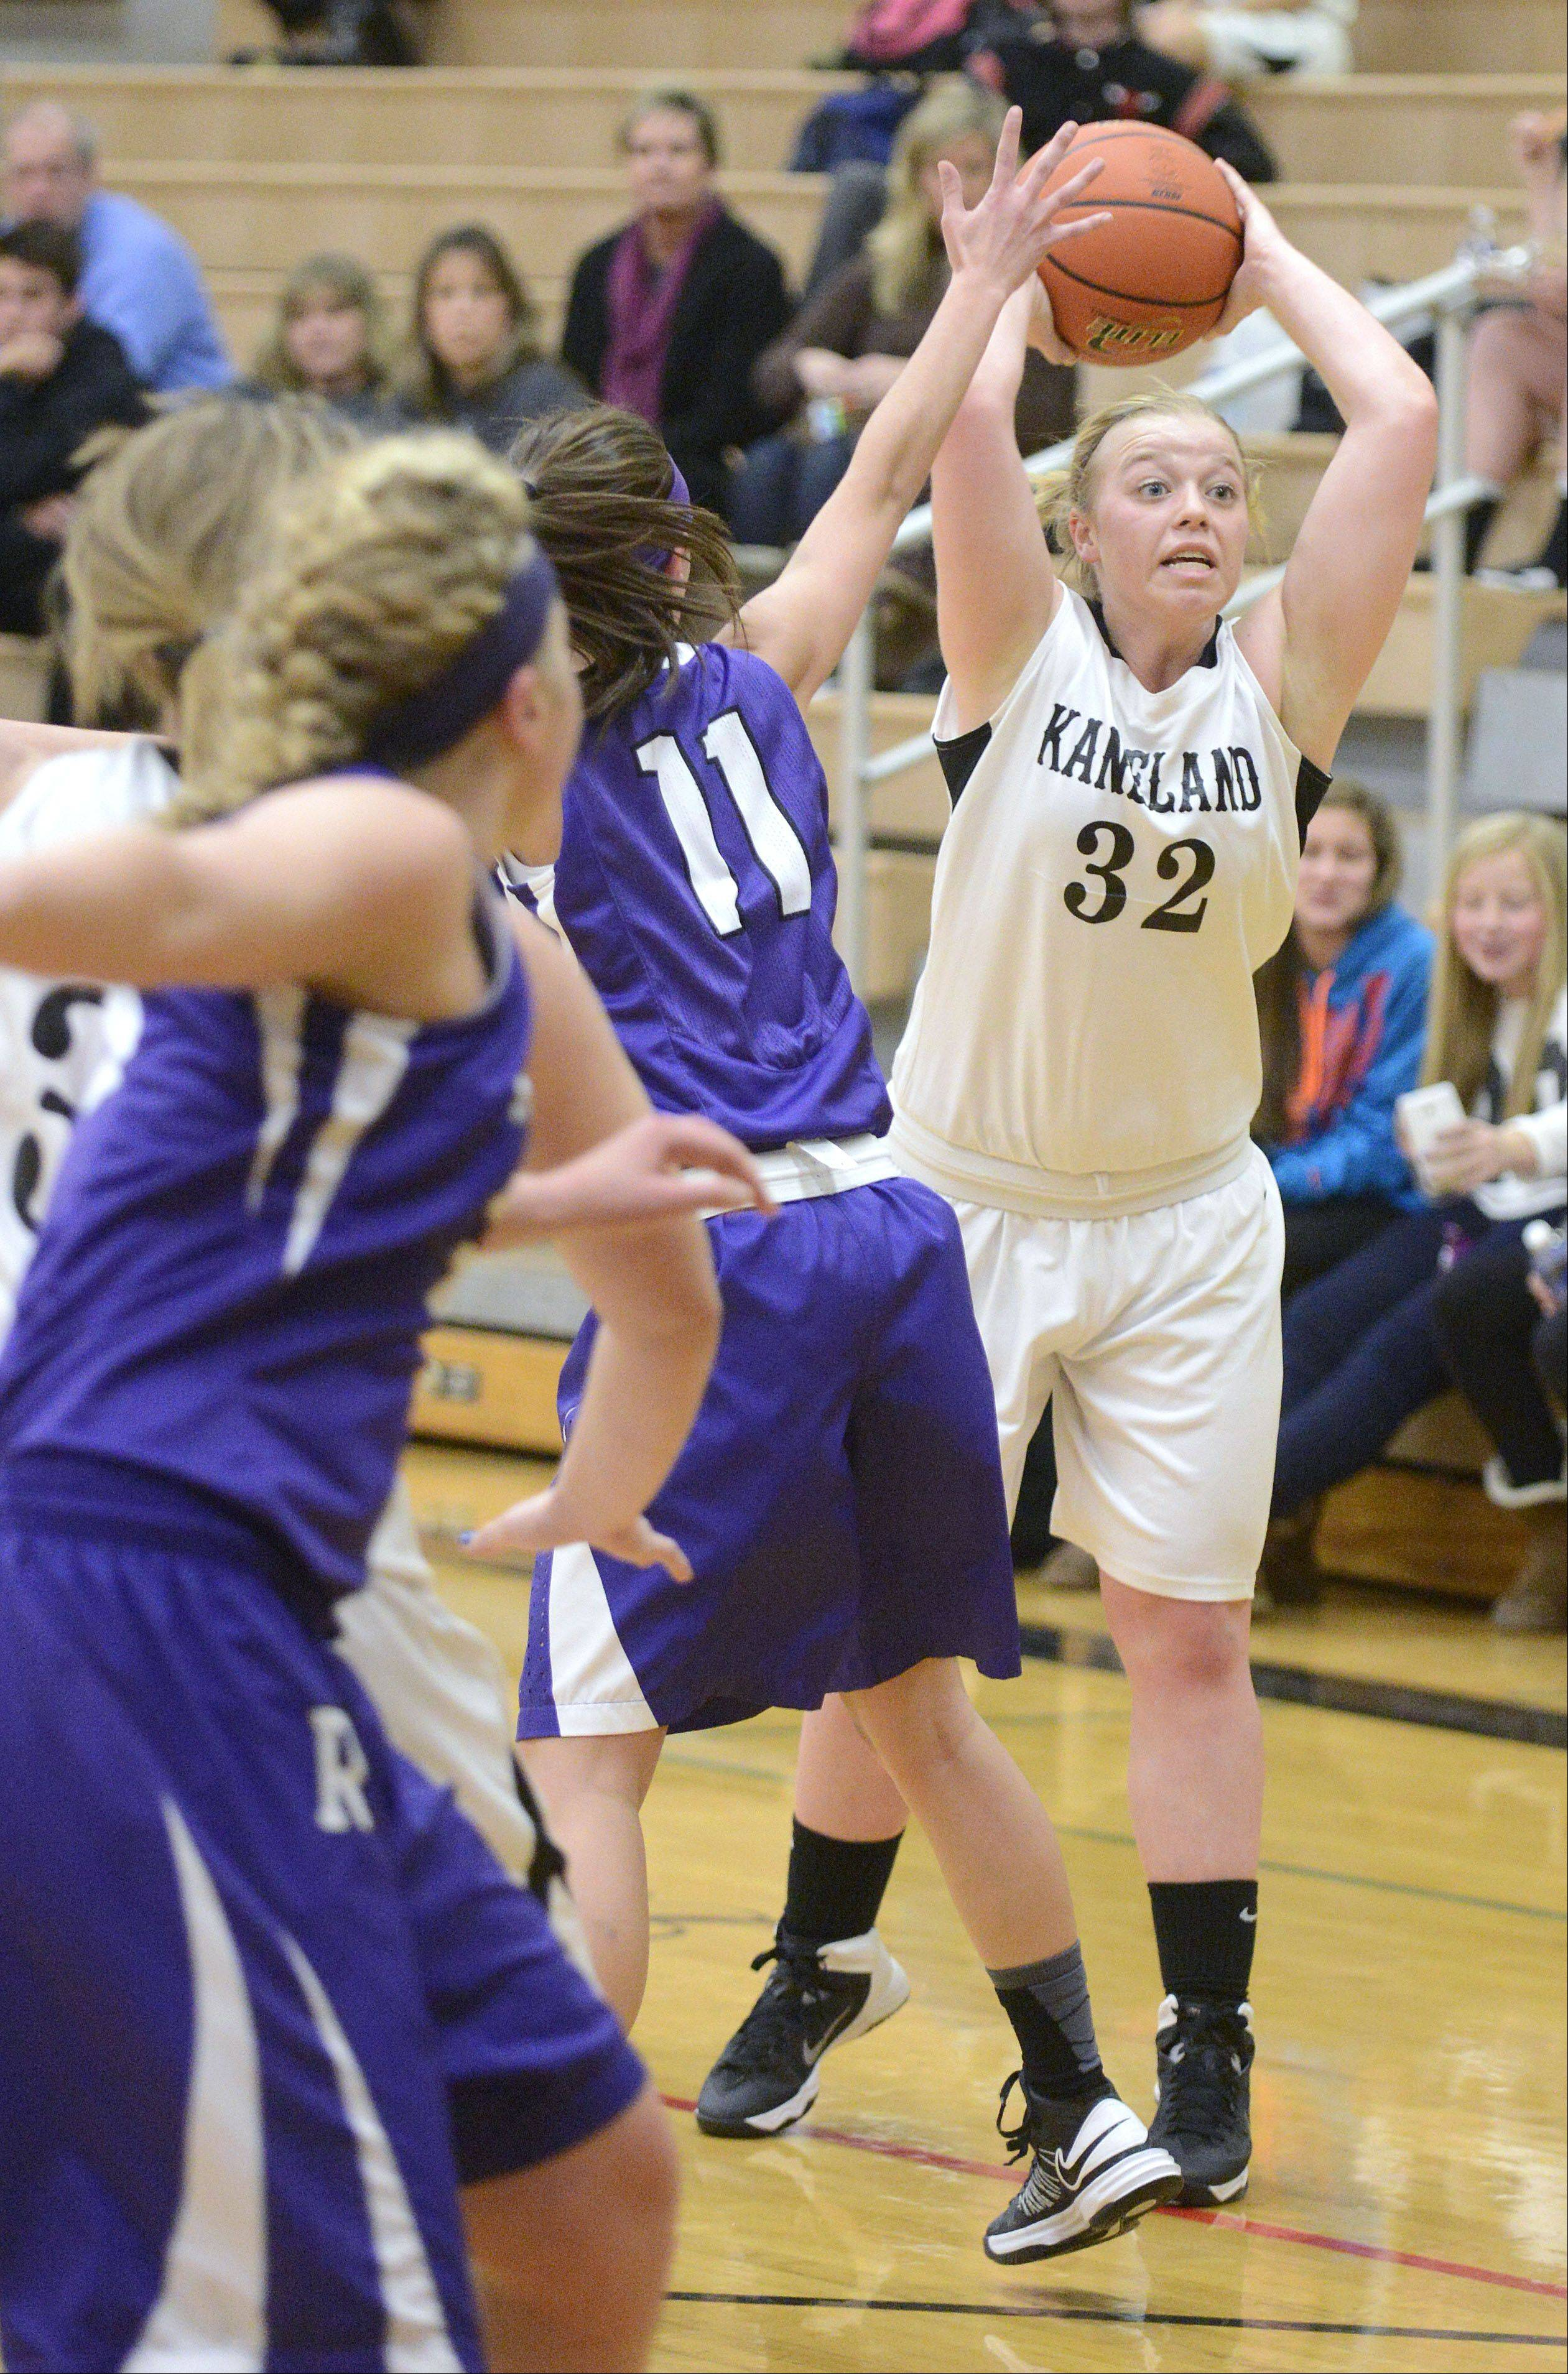 Rochelle's Anna Speed attempts to block a pass by Kaneland's Amber Winquist Bailey in the first quarter on Tuesday, December 10.